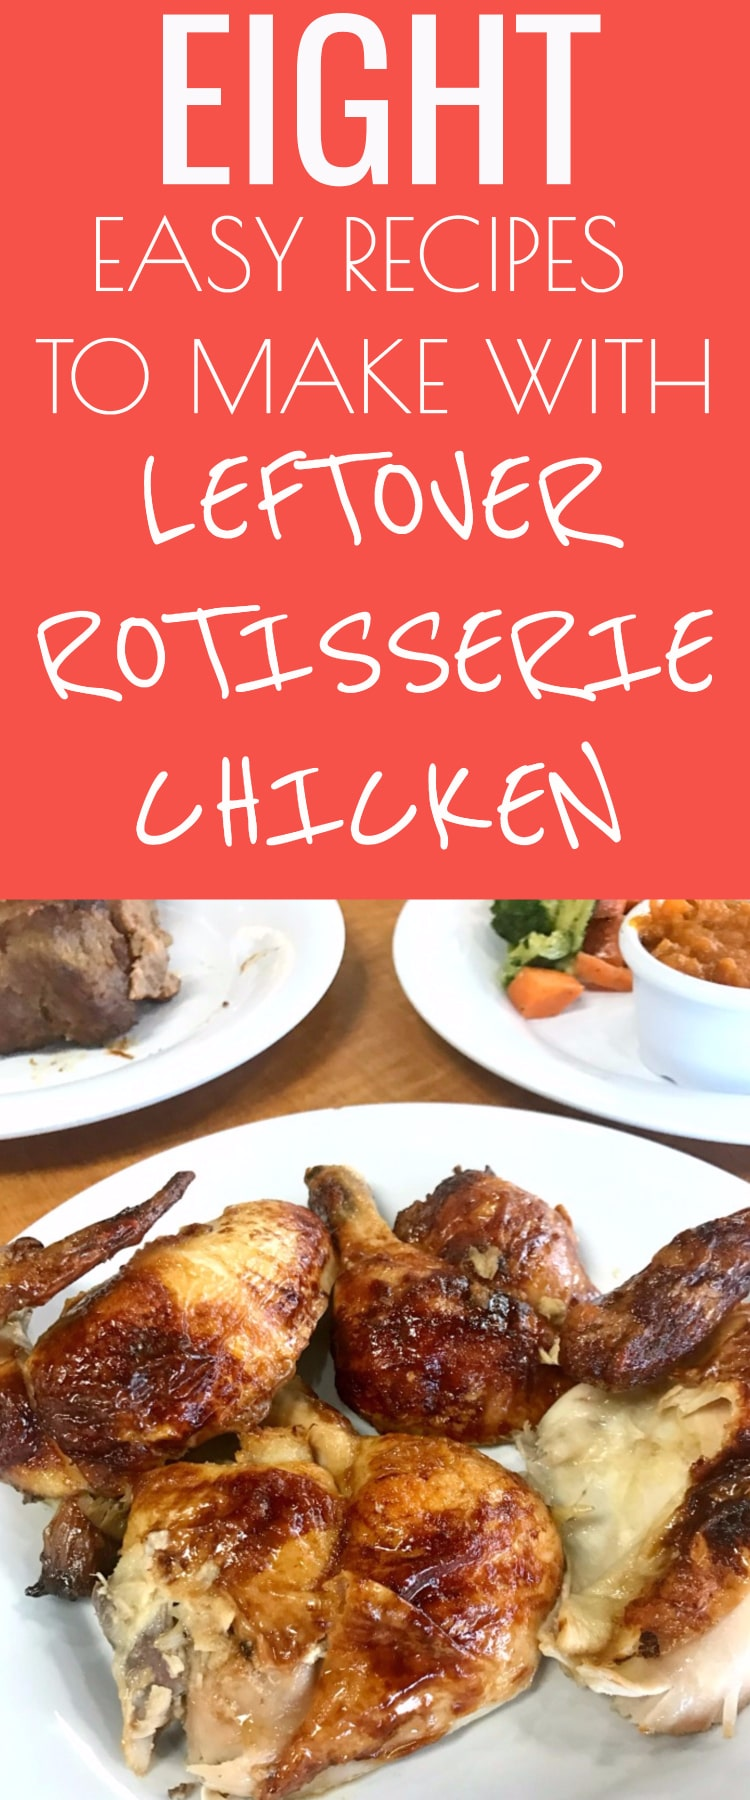 Leftover Rotisserie Chicken Recipes / Rotisserie Chicken / Leftover Rotisserie Chicken / #chicken #homemade #dinner #food #easyrecipes via @clarkscondensed